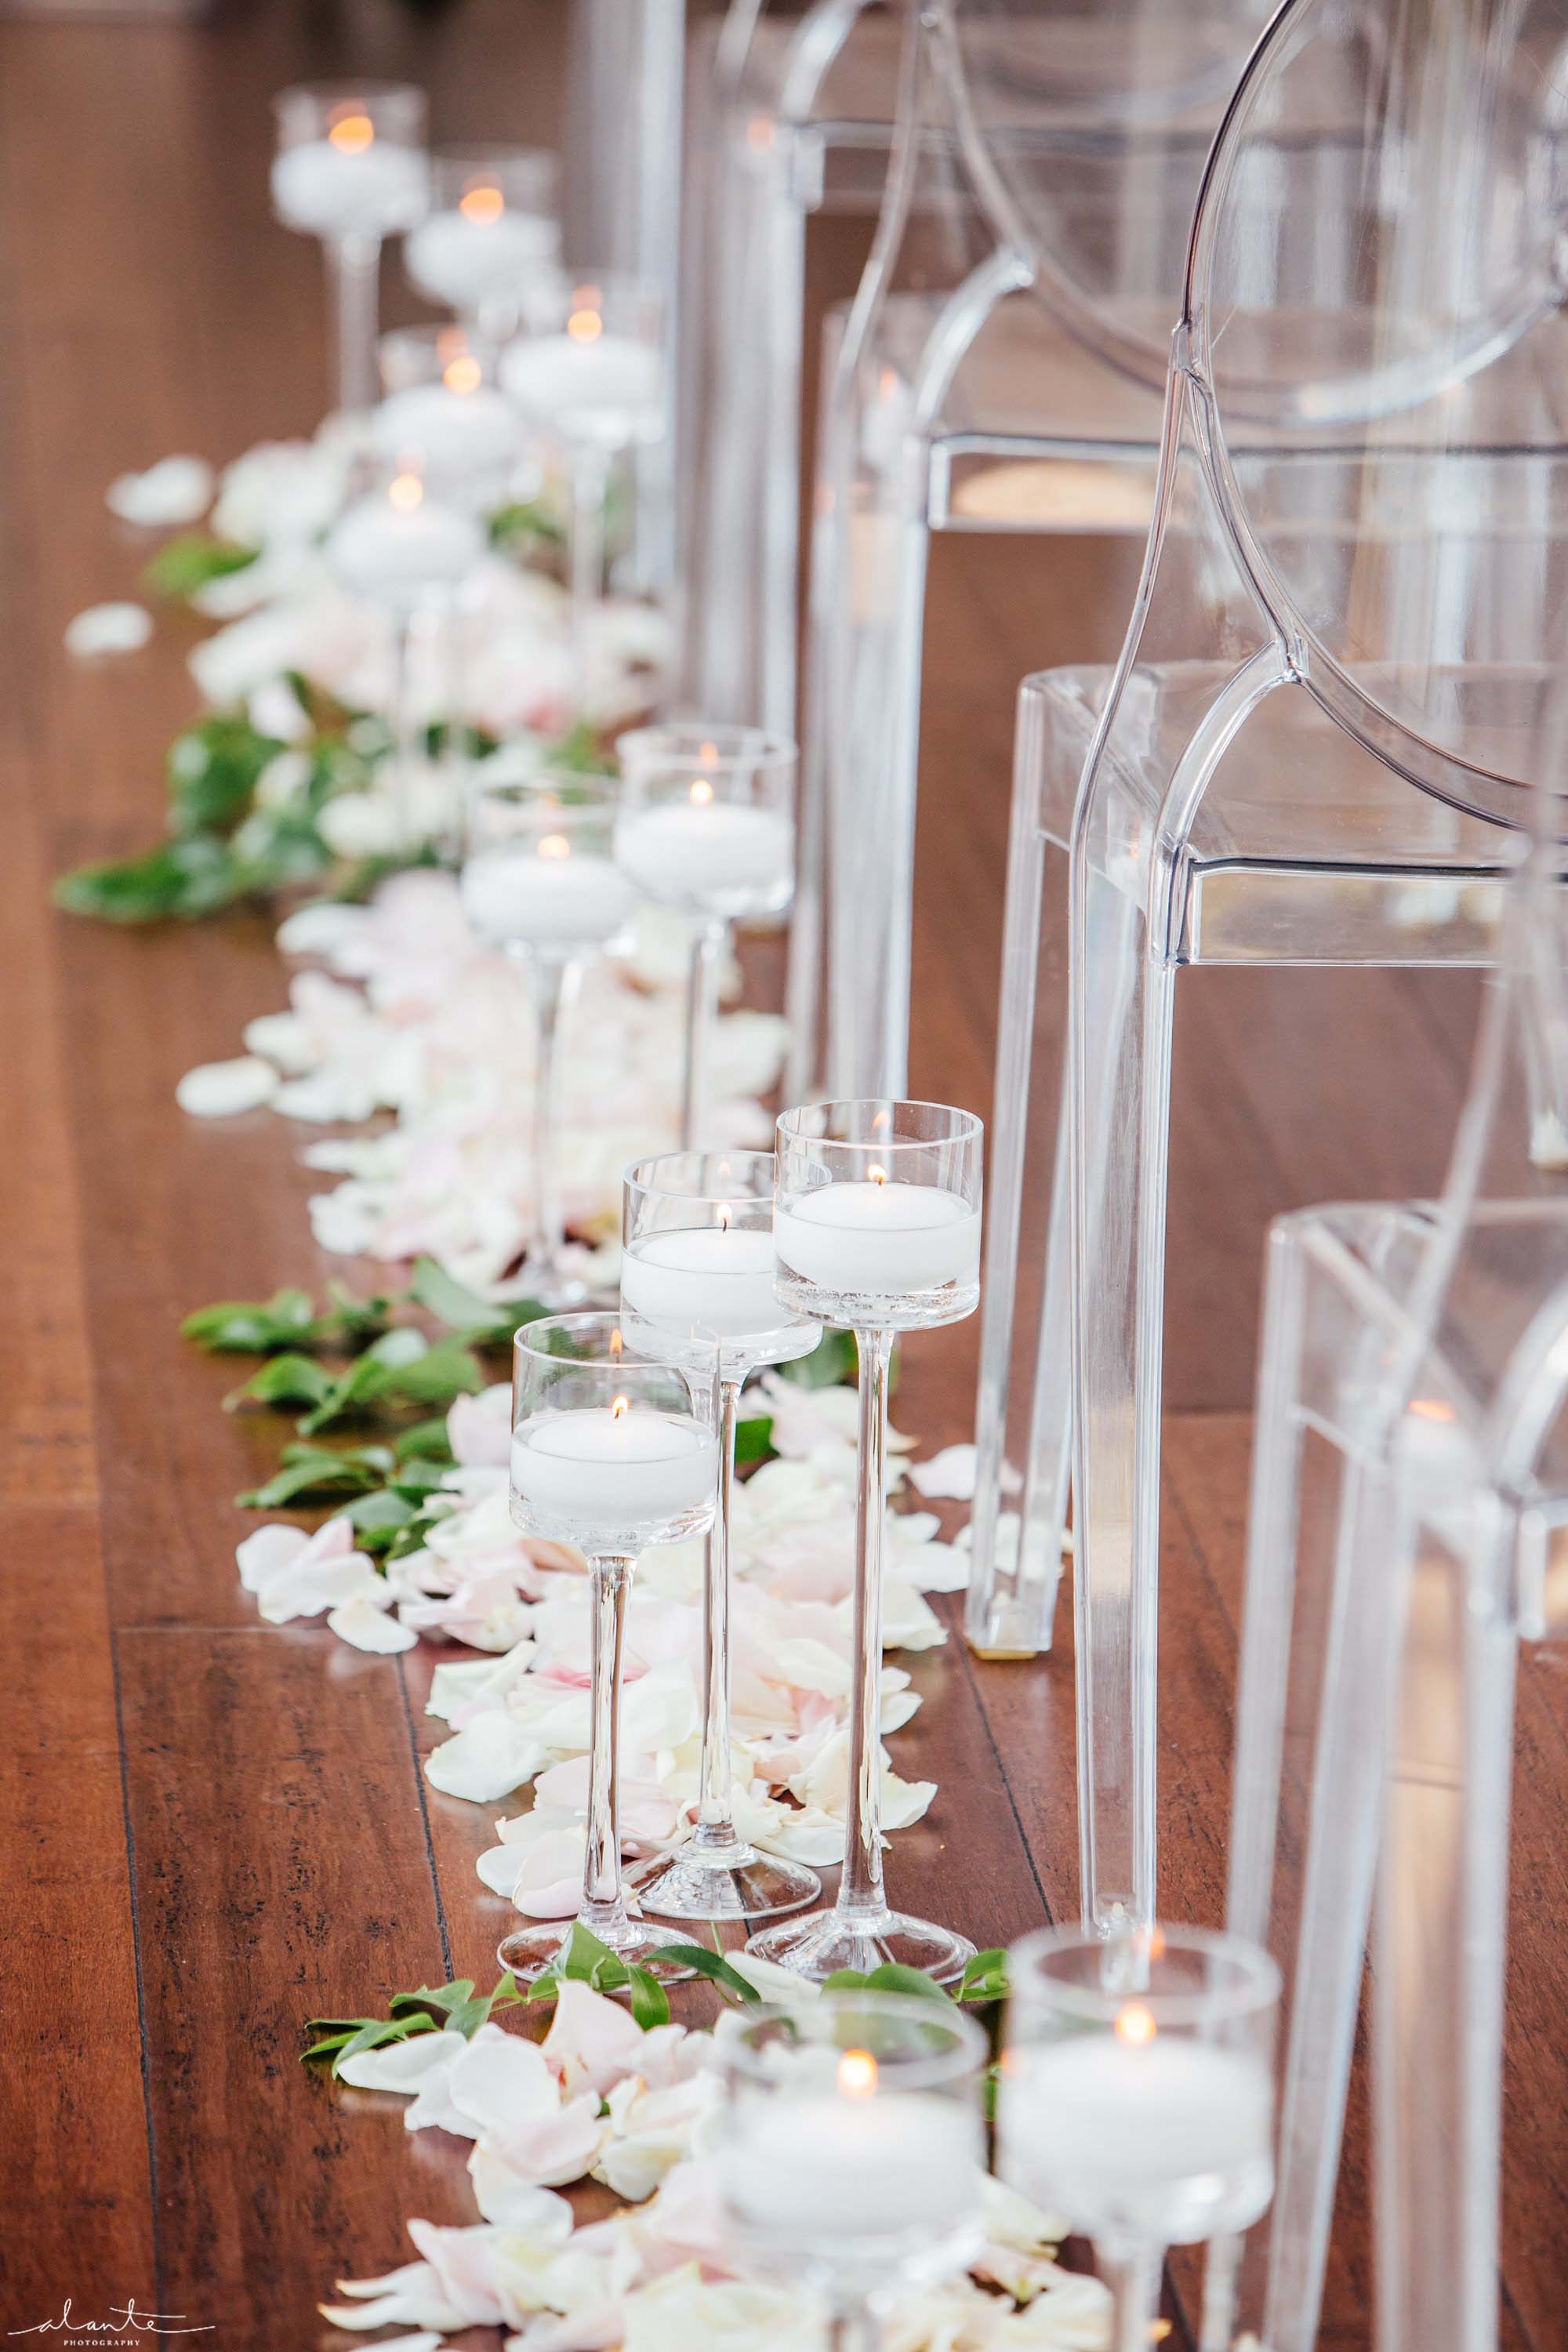 Wedding aisle with candles and rose petals - Olympic Rooftop Pavilion wedding with pink peonies by Flora Nova Design Seattle